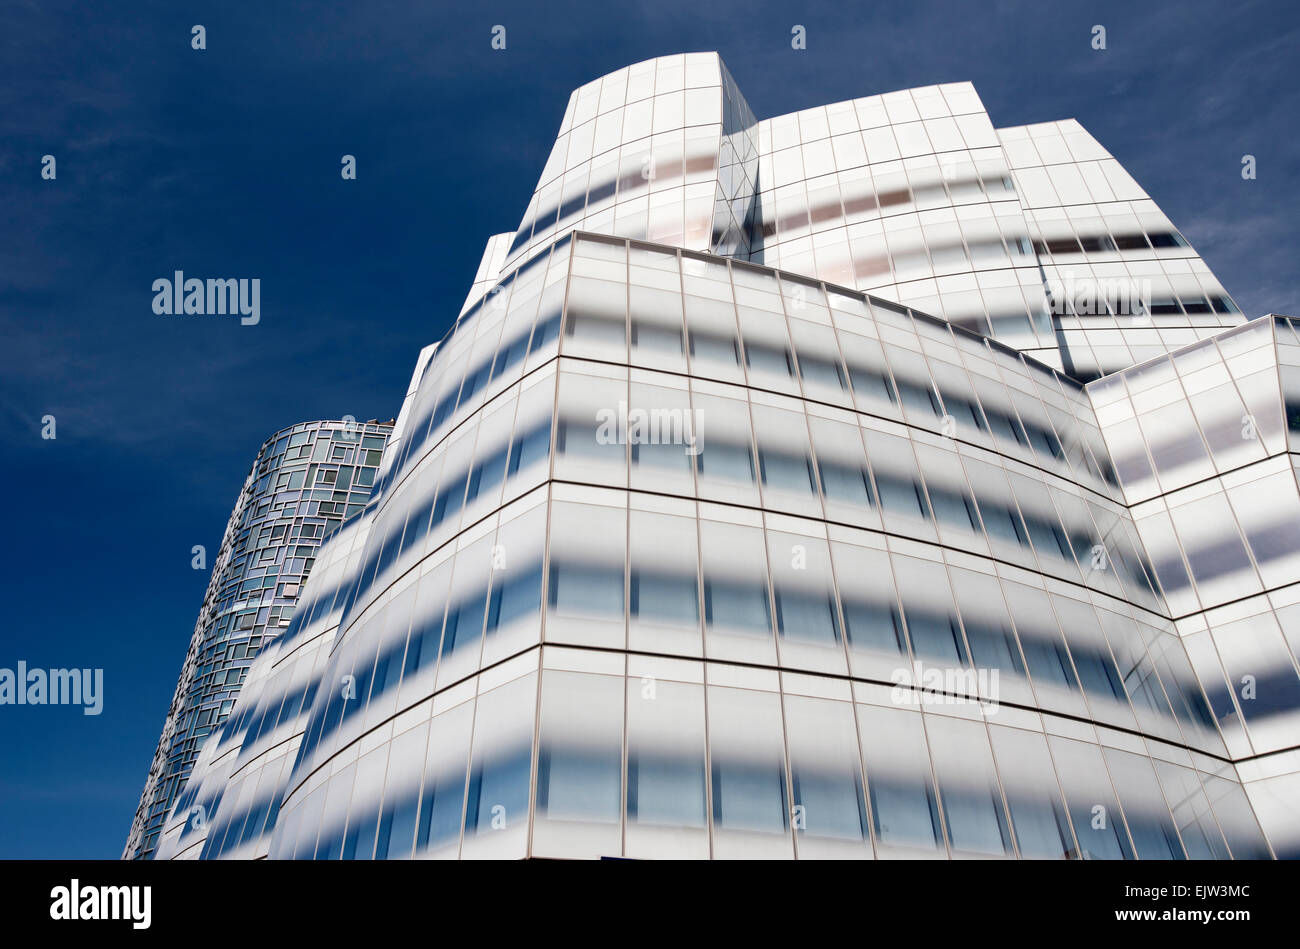 IAC BUILDING (©FRANK GEHRY 2007) WEST SIDE HIGHWAY CHELSEA MANHATTAN NEW YORK CITY USA - Stock Image